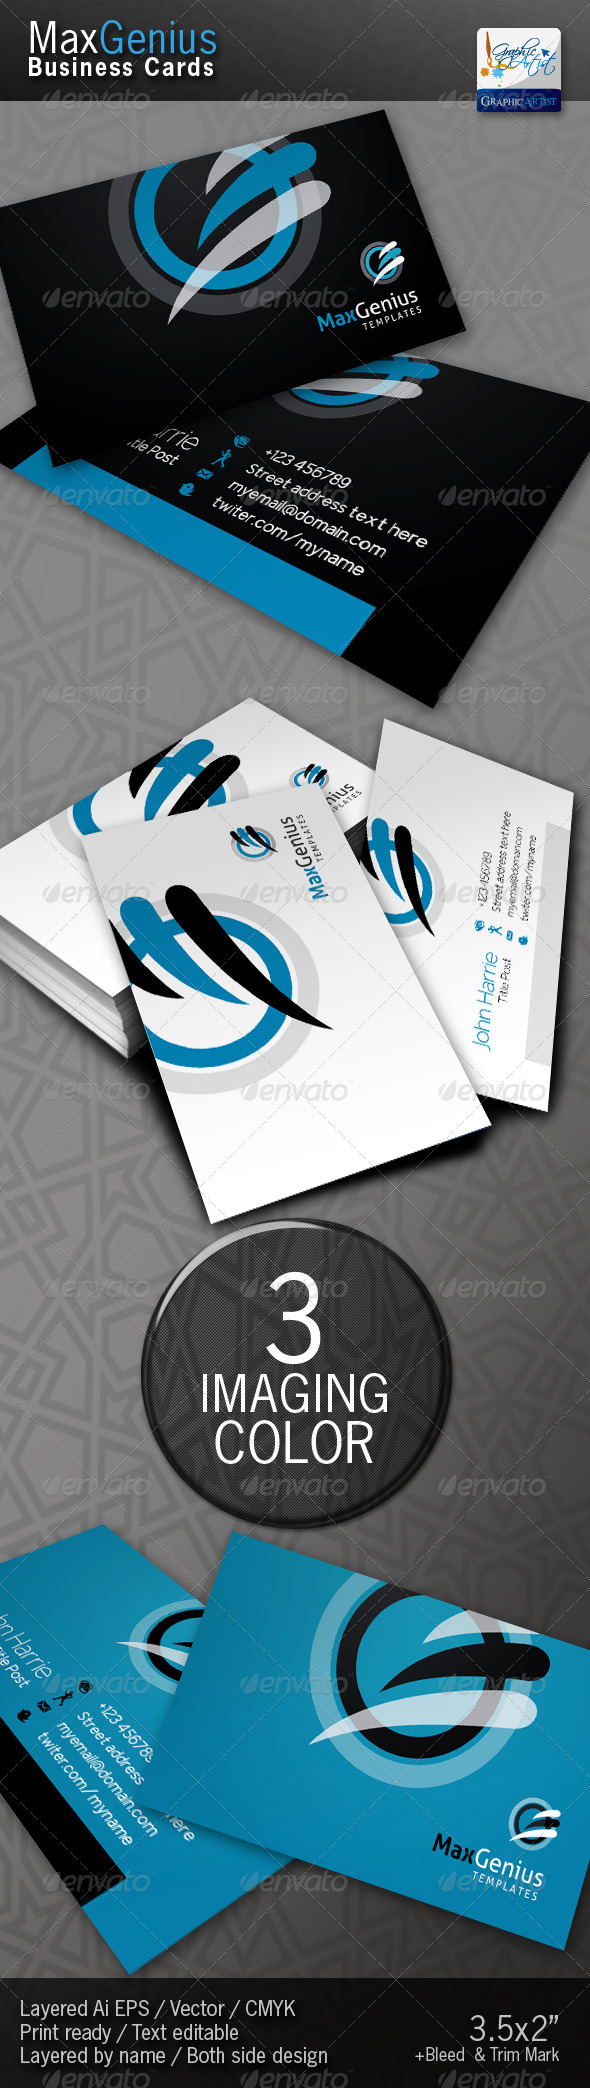 Graphic River MaxGenius Business Cards Print Templates -  Business Cards  Corporate 1455703